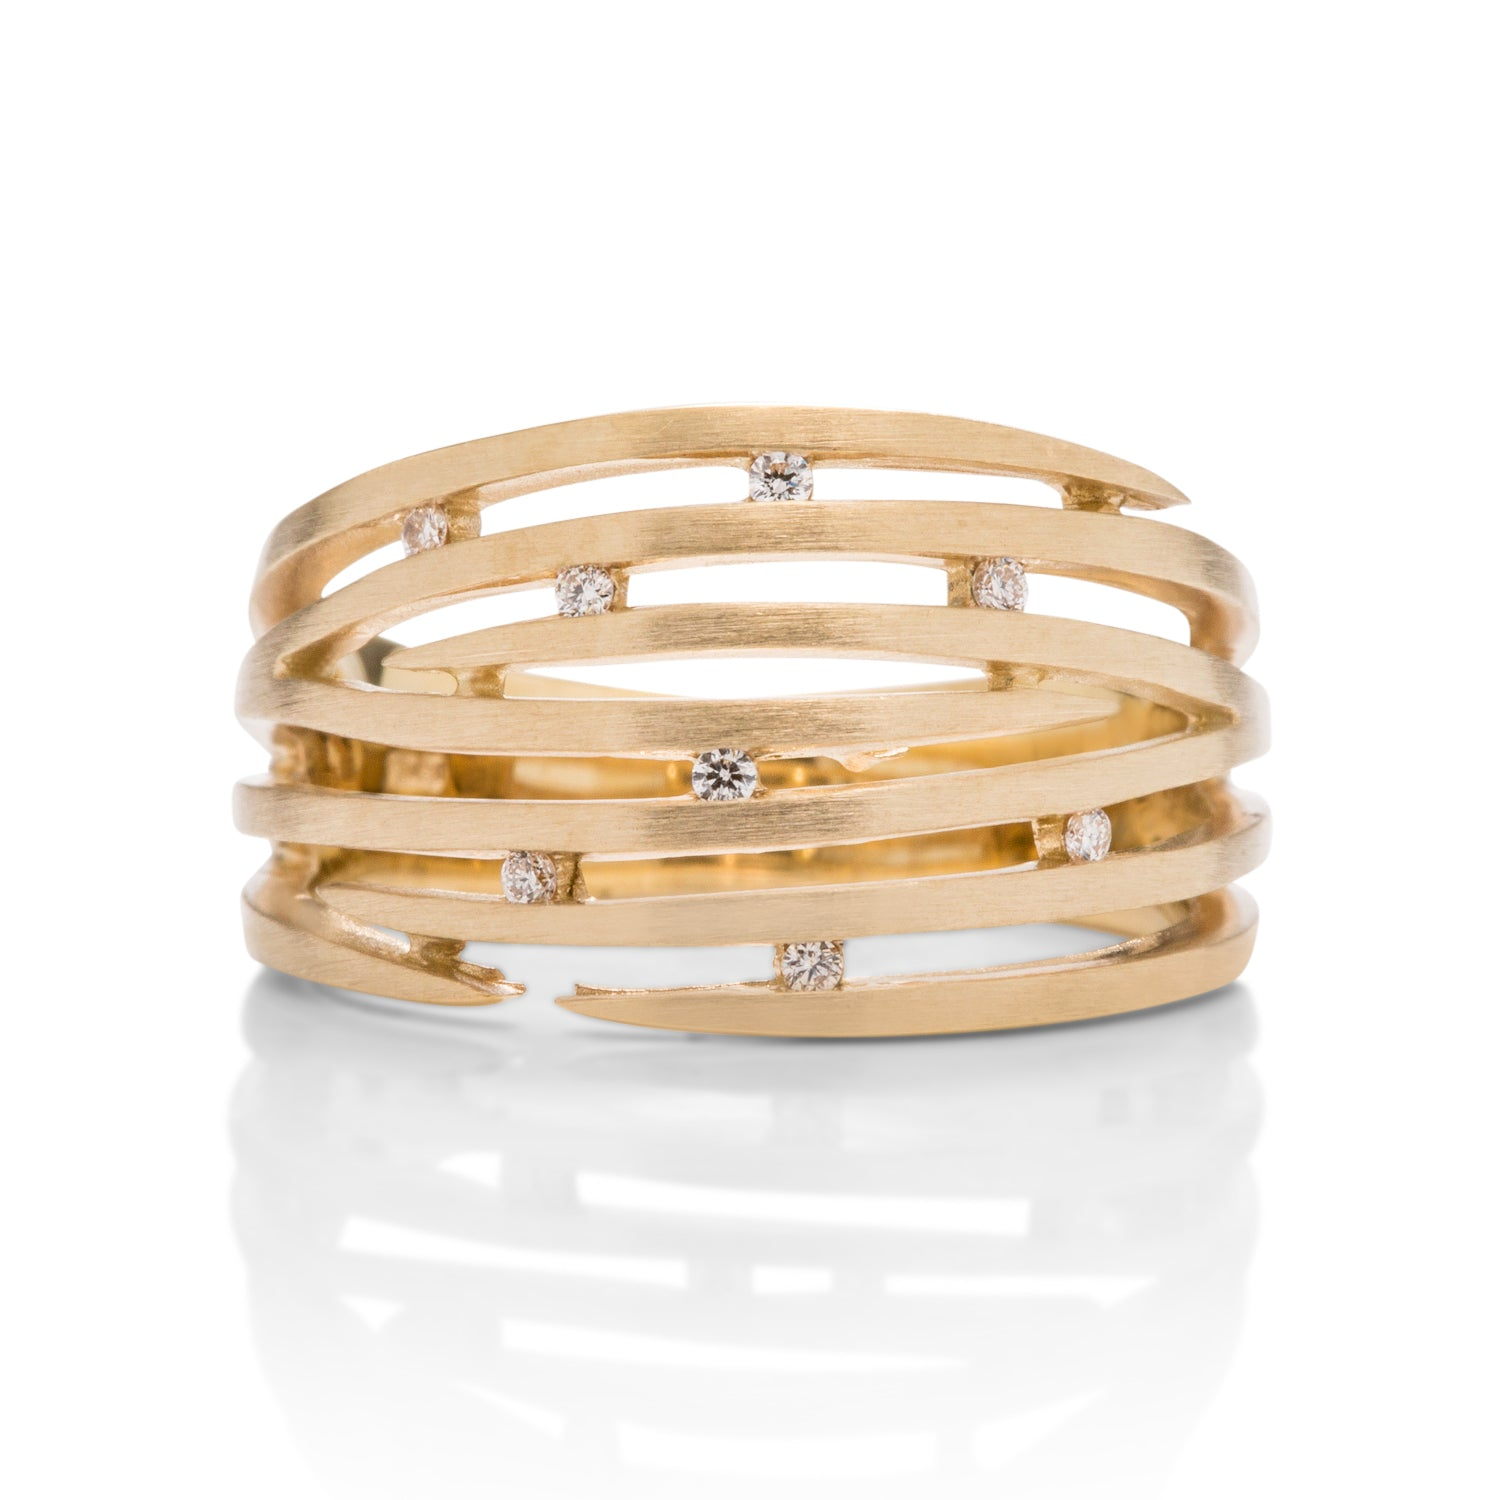 18k Gold Diamond Ring - Charles Koll Jewellers